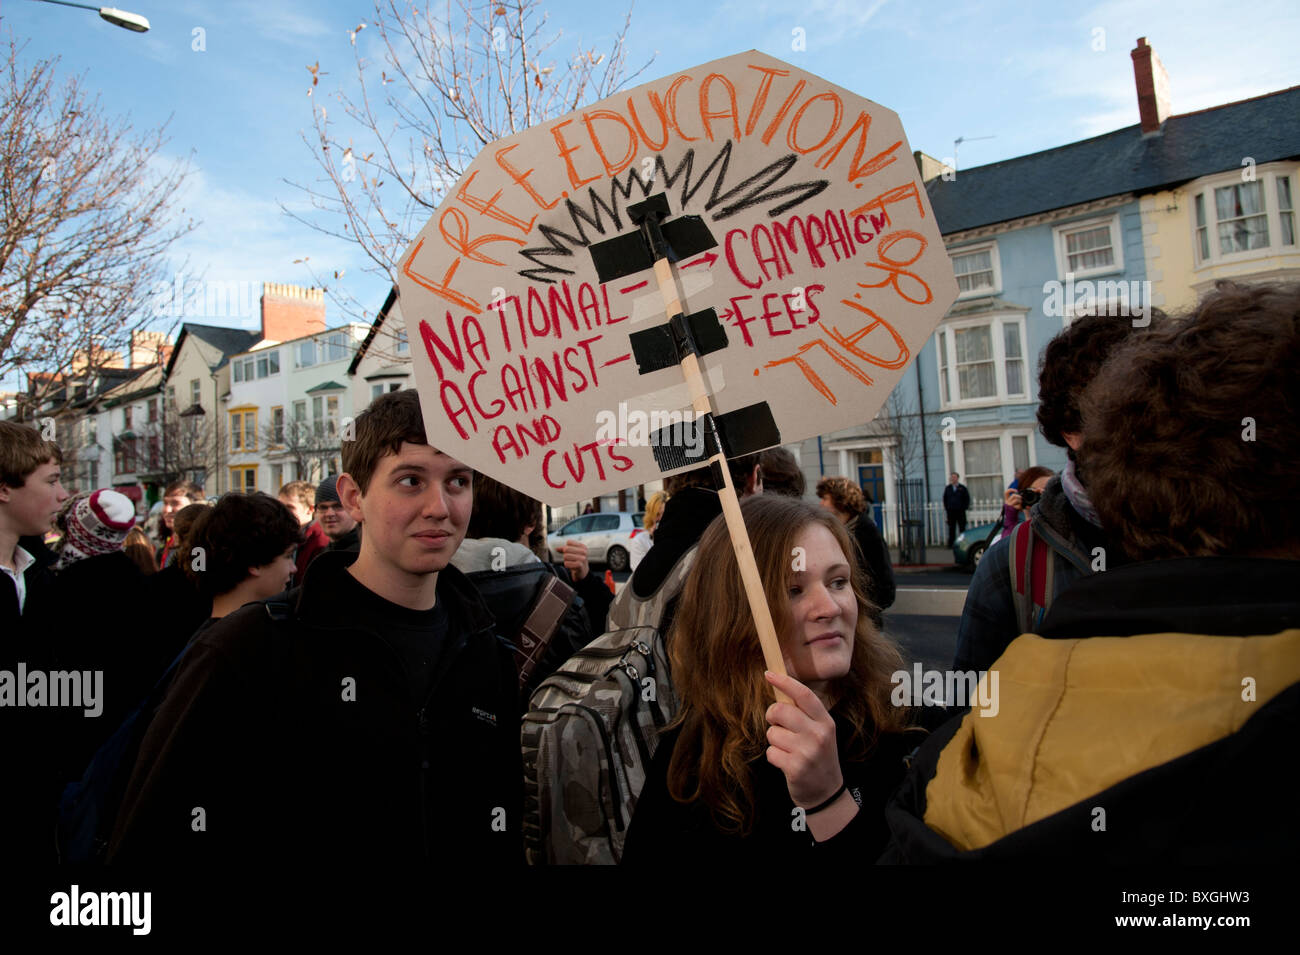 University, college and school students protesting against the governments cuts in higher education funding Aberystwyth - Stock Image